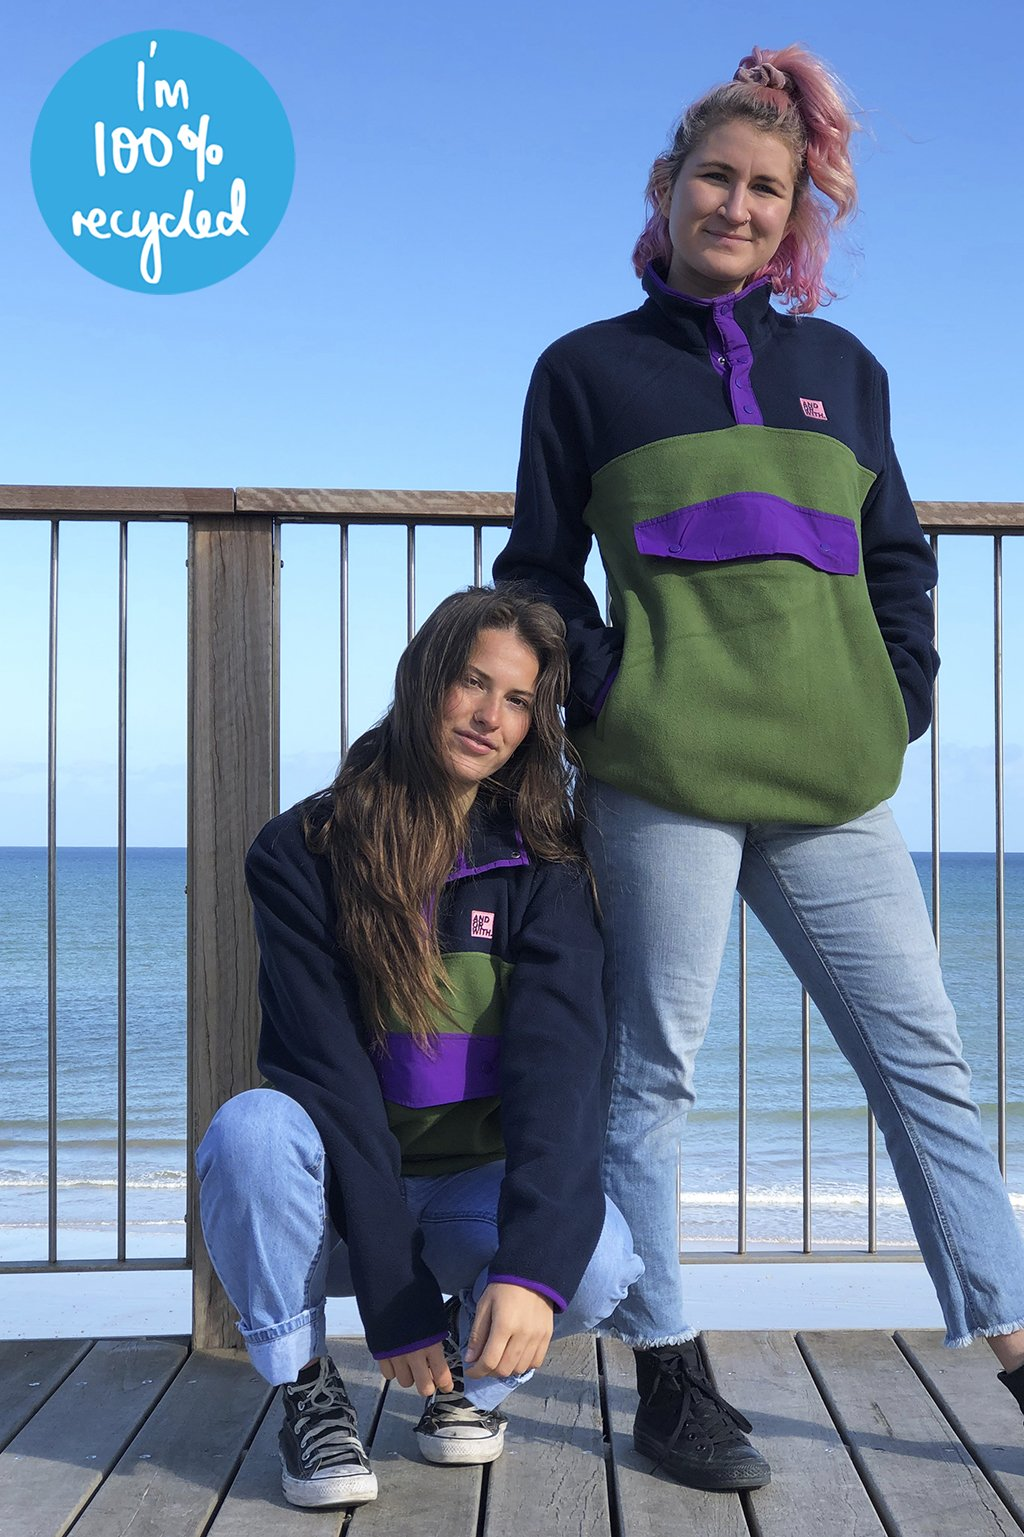 andorwith-adelaide-surf-shop-australian-surf-brand